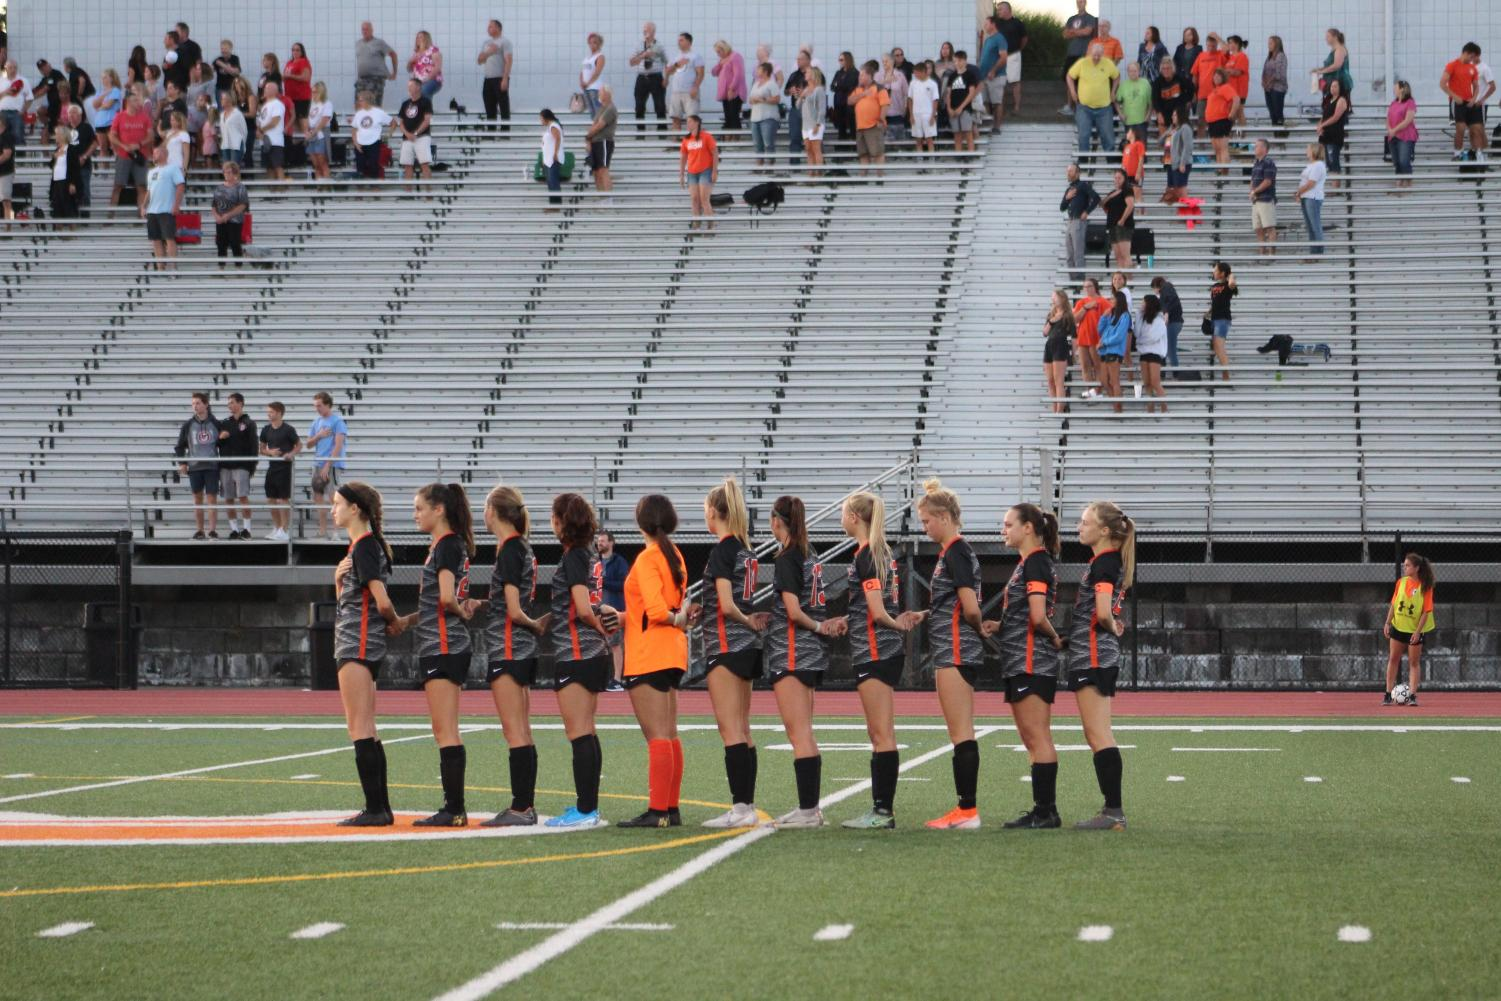 Lady Hawks stand in line during the National Anthem before their game against Peters on Wednesday, Sept. 4.